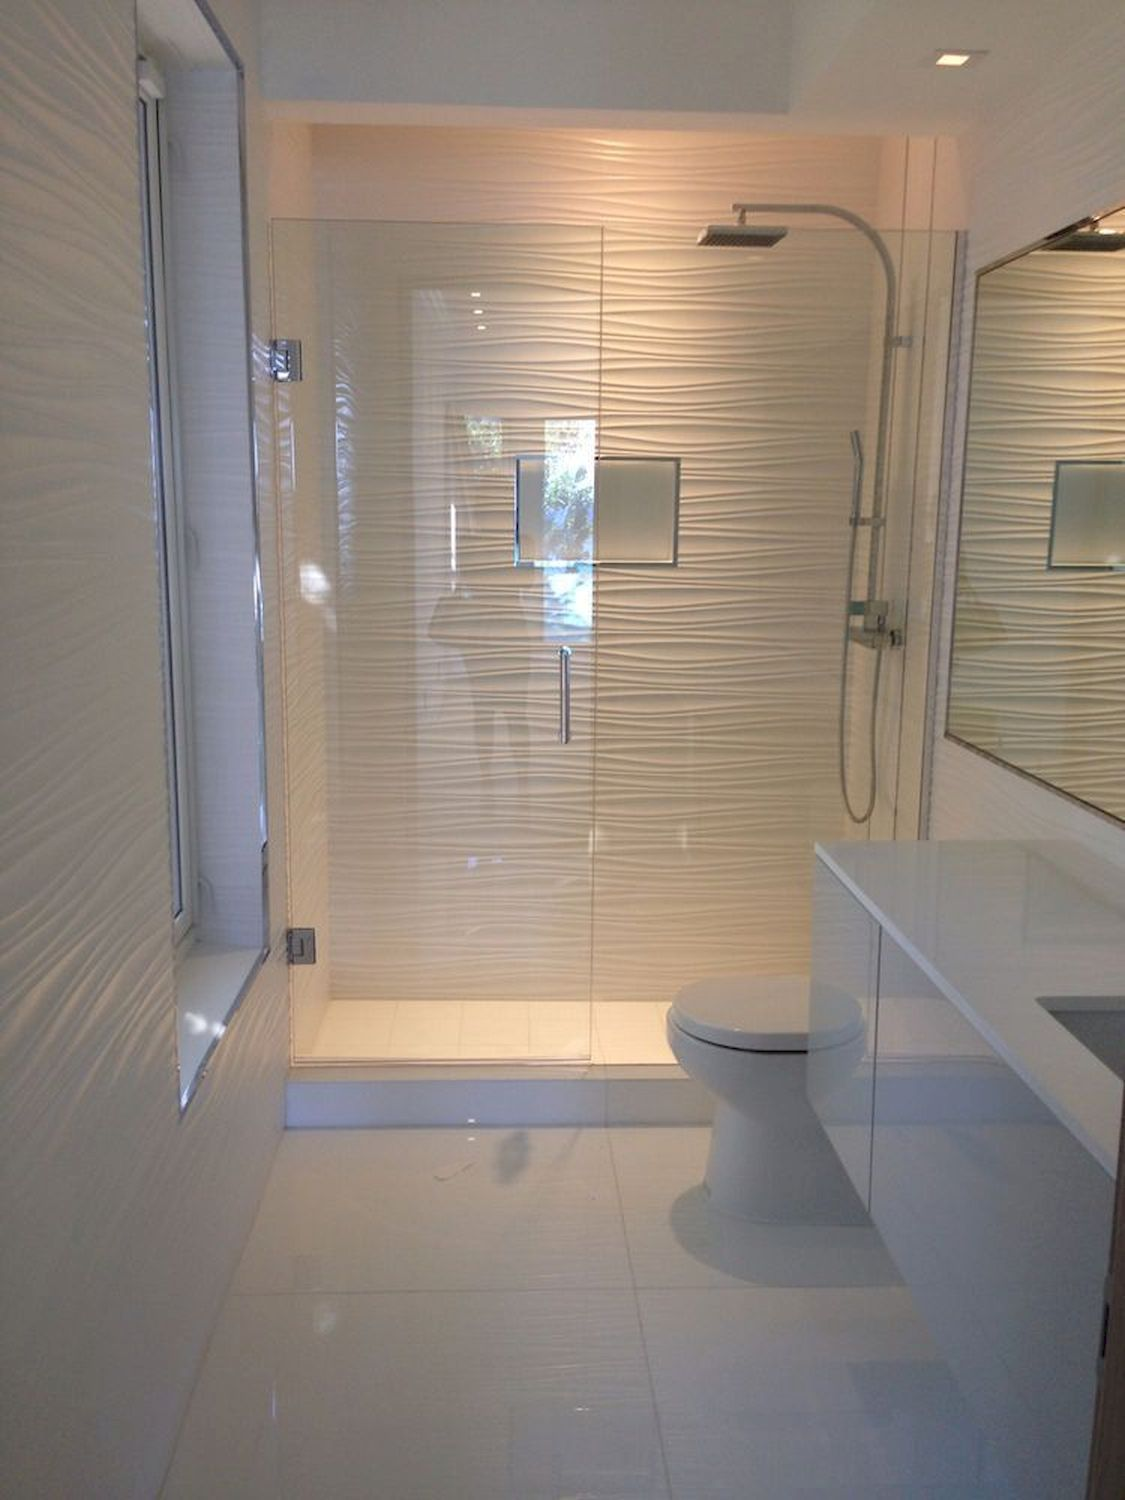 Small Comfort Room Tiles Design: Bath And Shower Tile Designs To Your Home (With Images